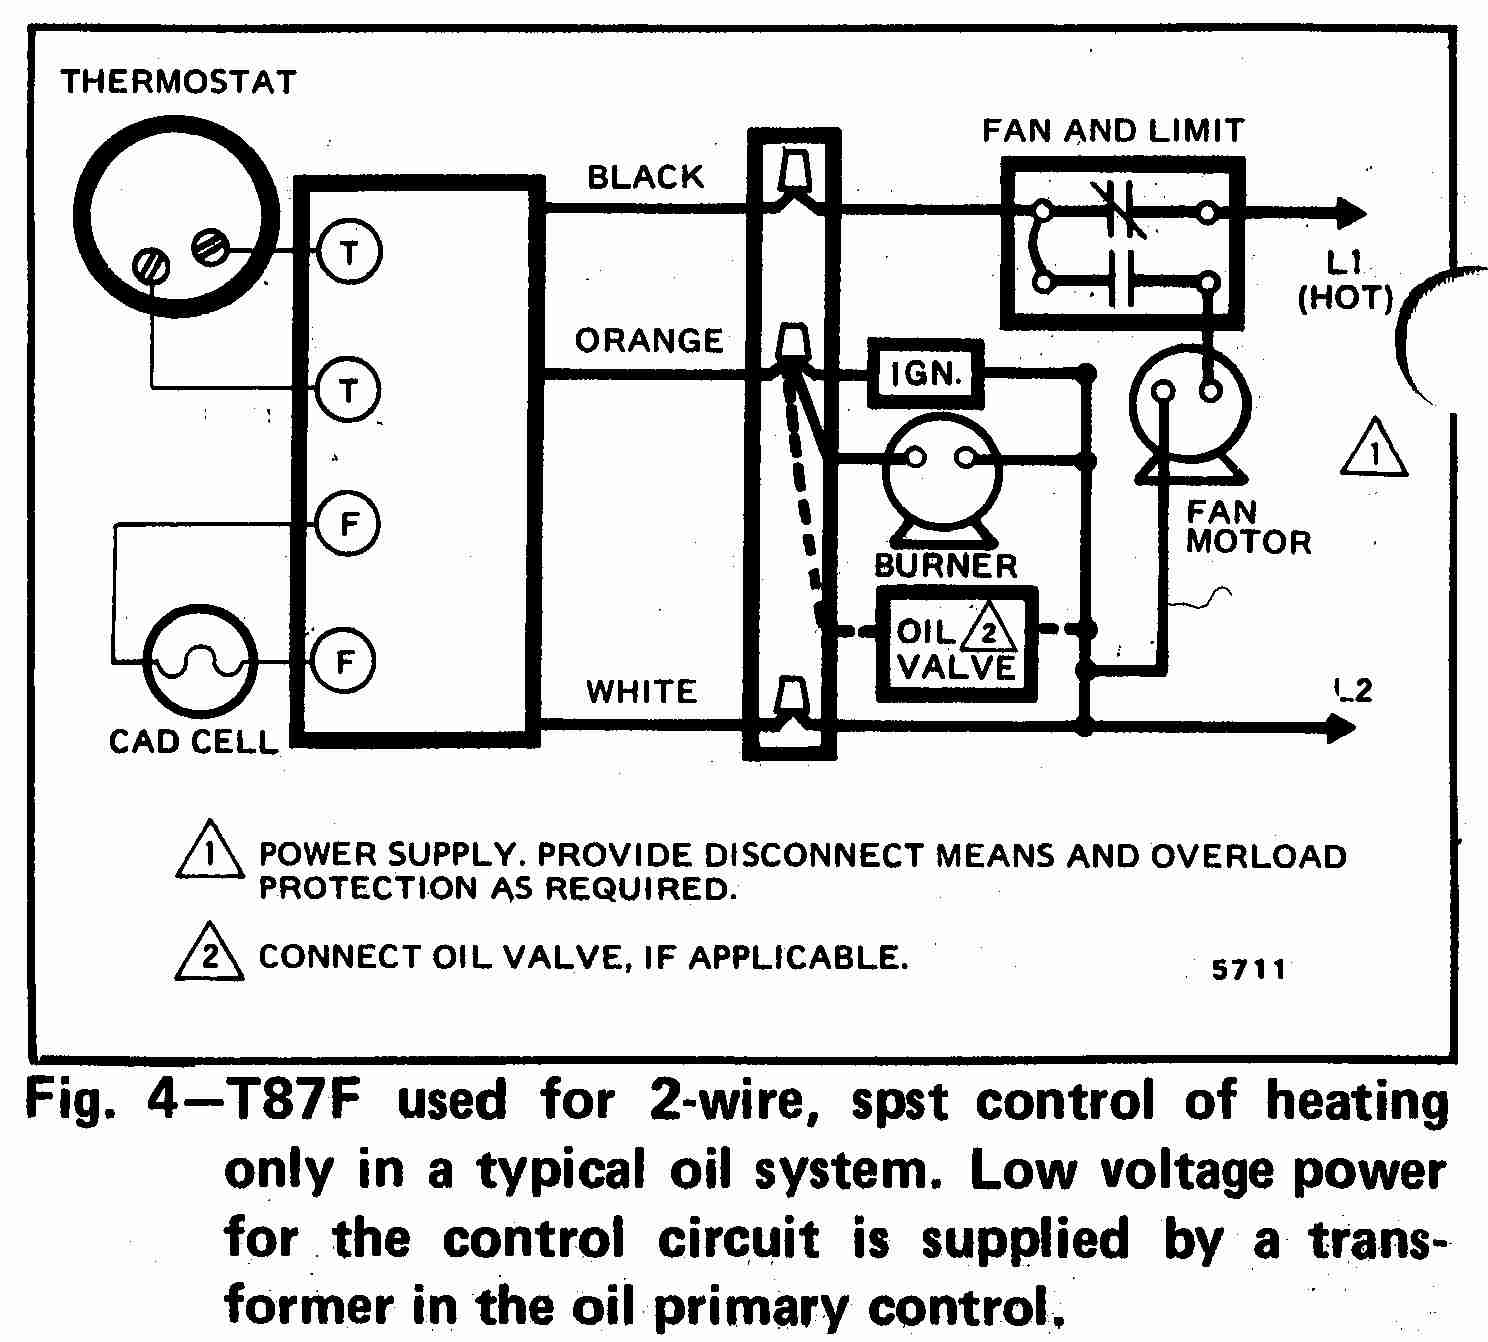 TT_T87F_0002_2W_DJF wiring diagram for thermostat heat pump thermostat wiring \u2022 free LuxPro Thermostat Manual at aneh.co